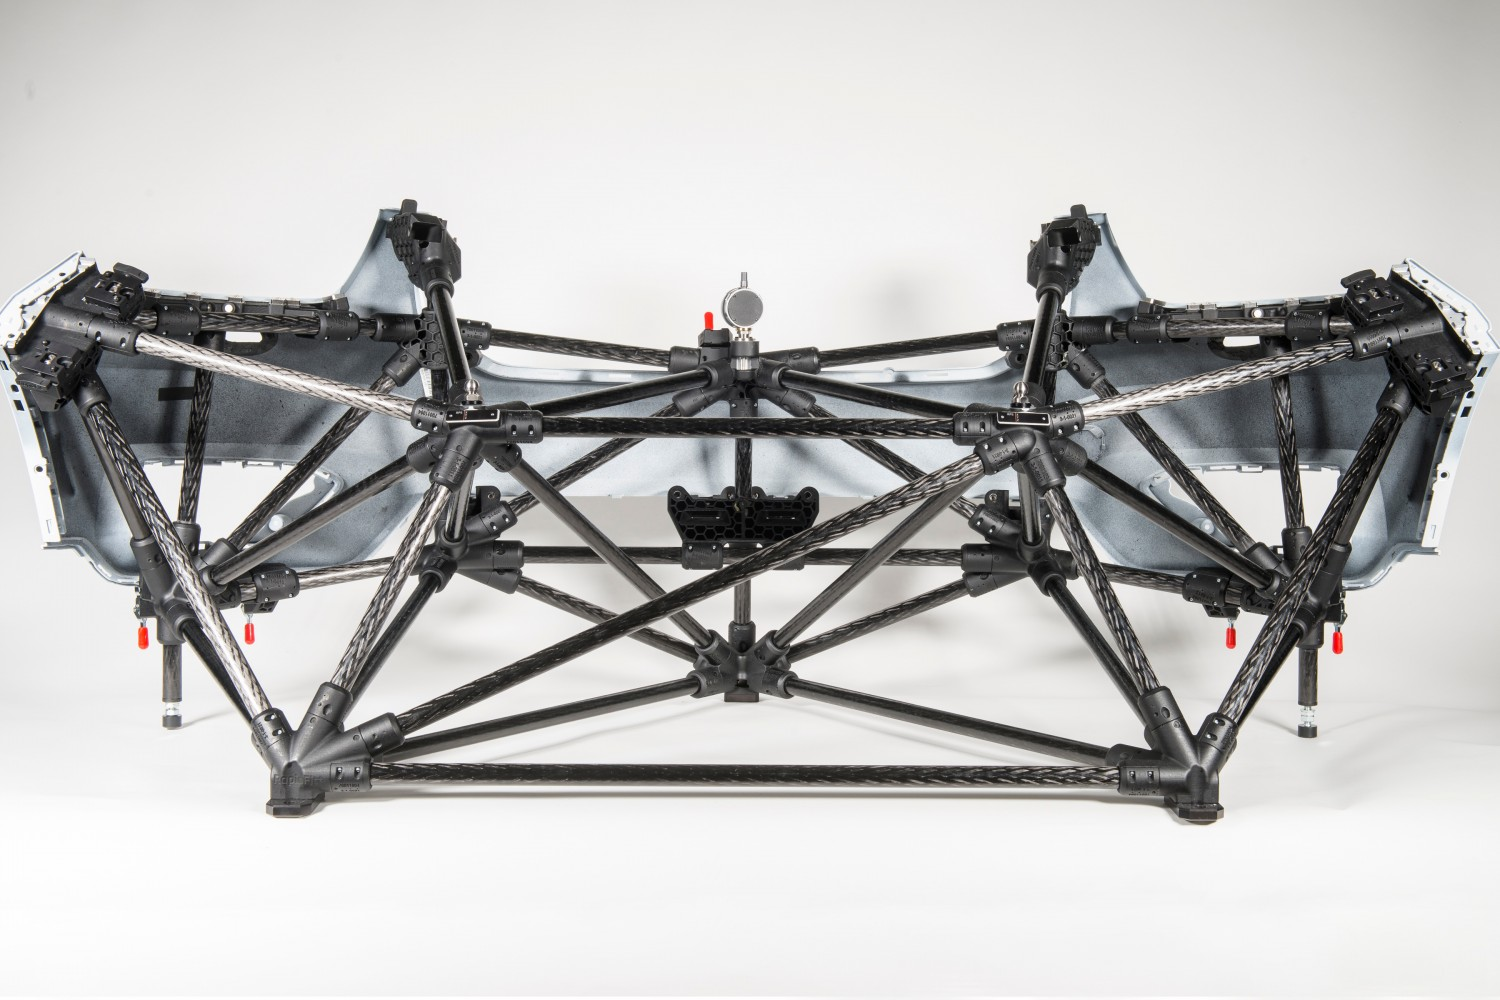 Carbon fiber automotive fixture by RapidFit